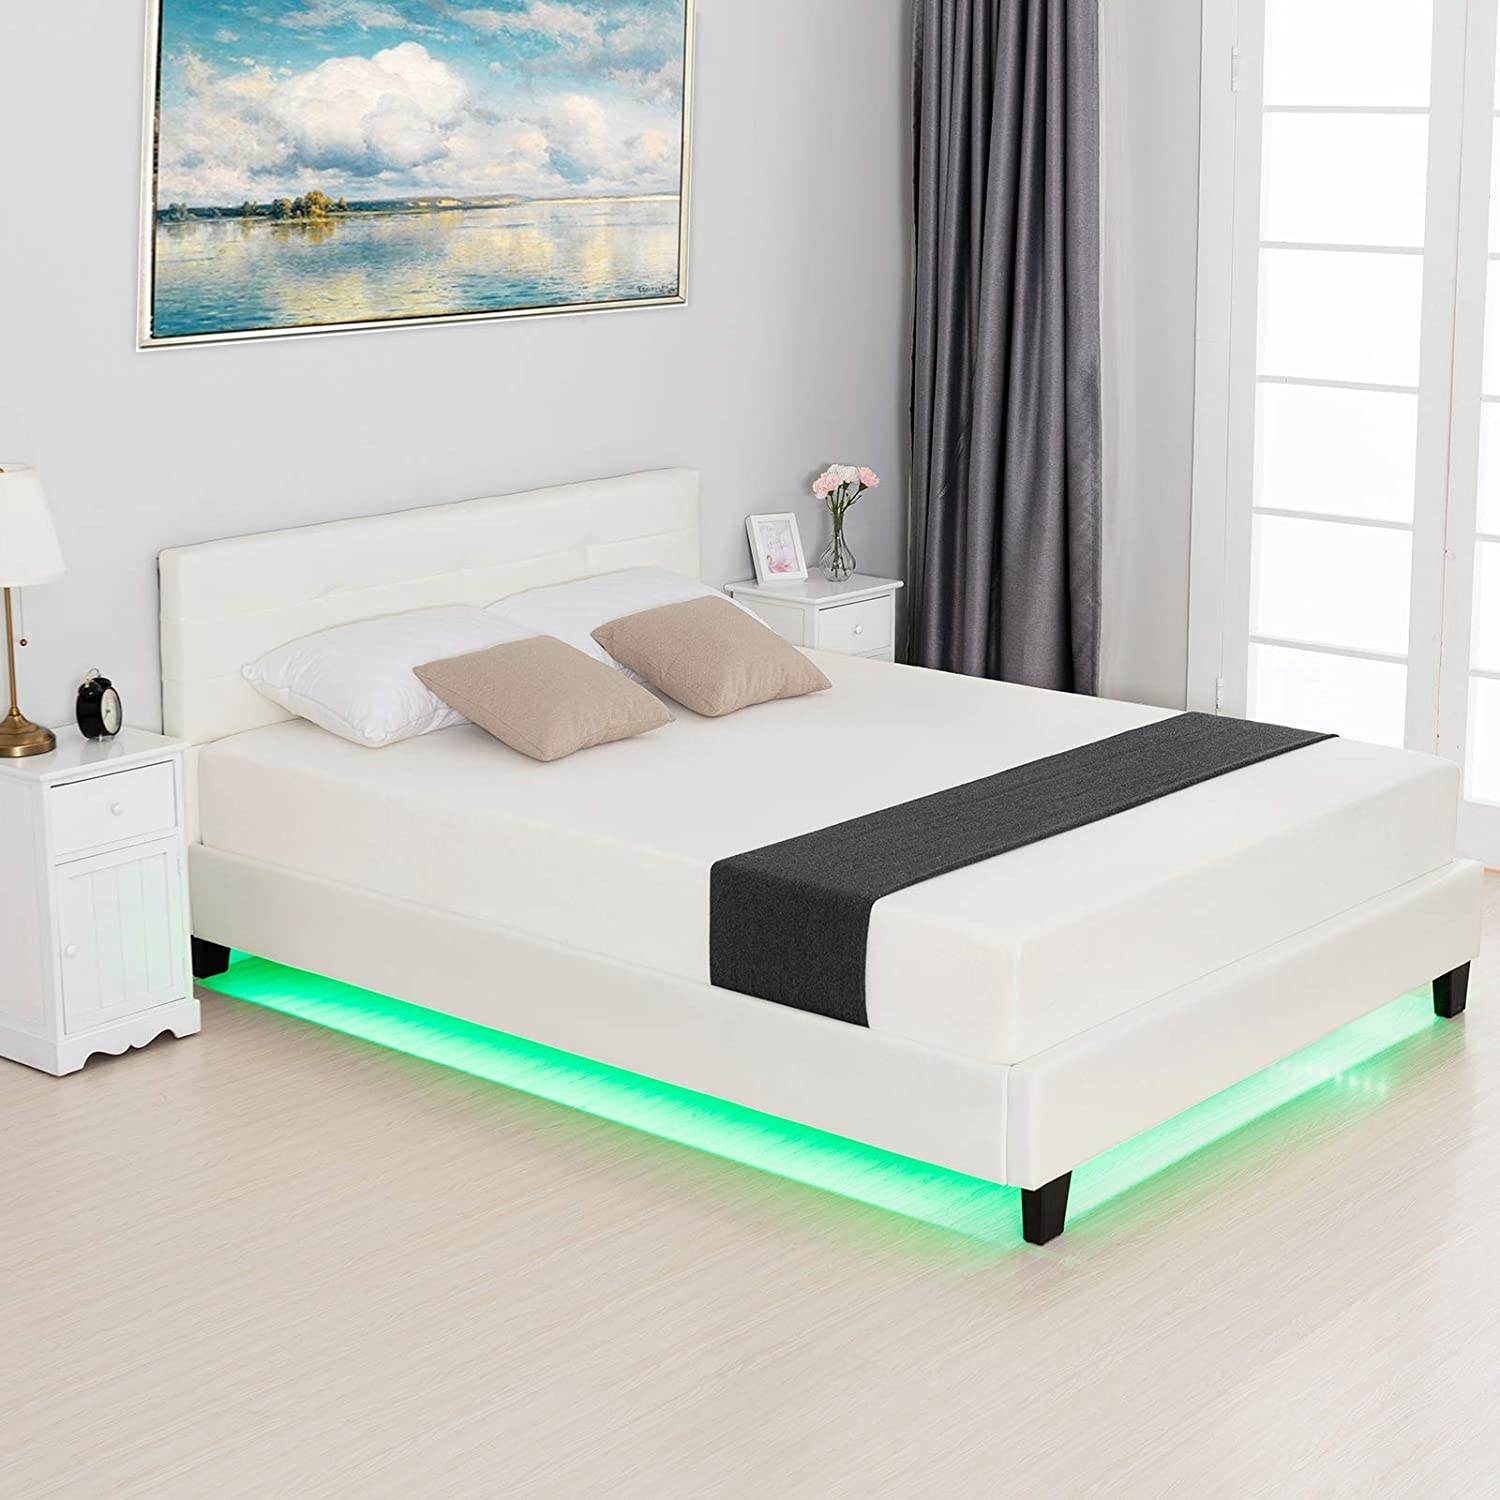 LAGRIMA Modern Upholstered Faux Leather Platform Bed with LED Light with 2.8-Inch Solid Wooden Slat Support, White, Queen Size